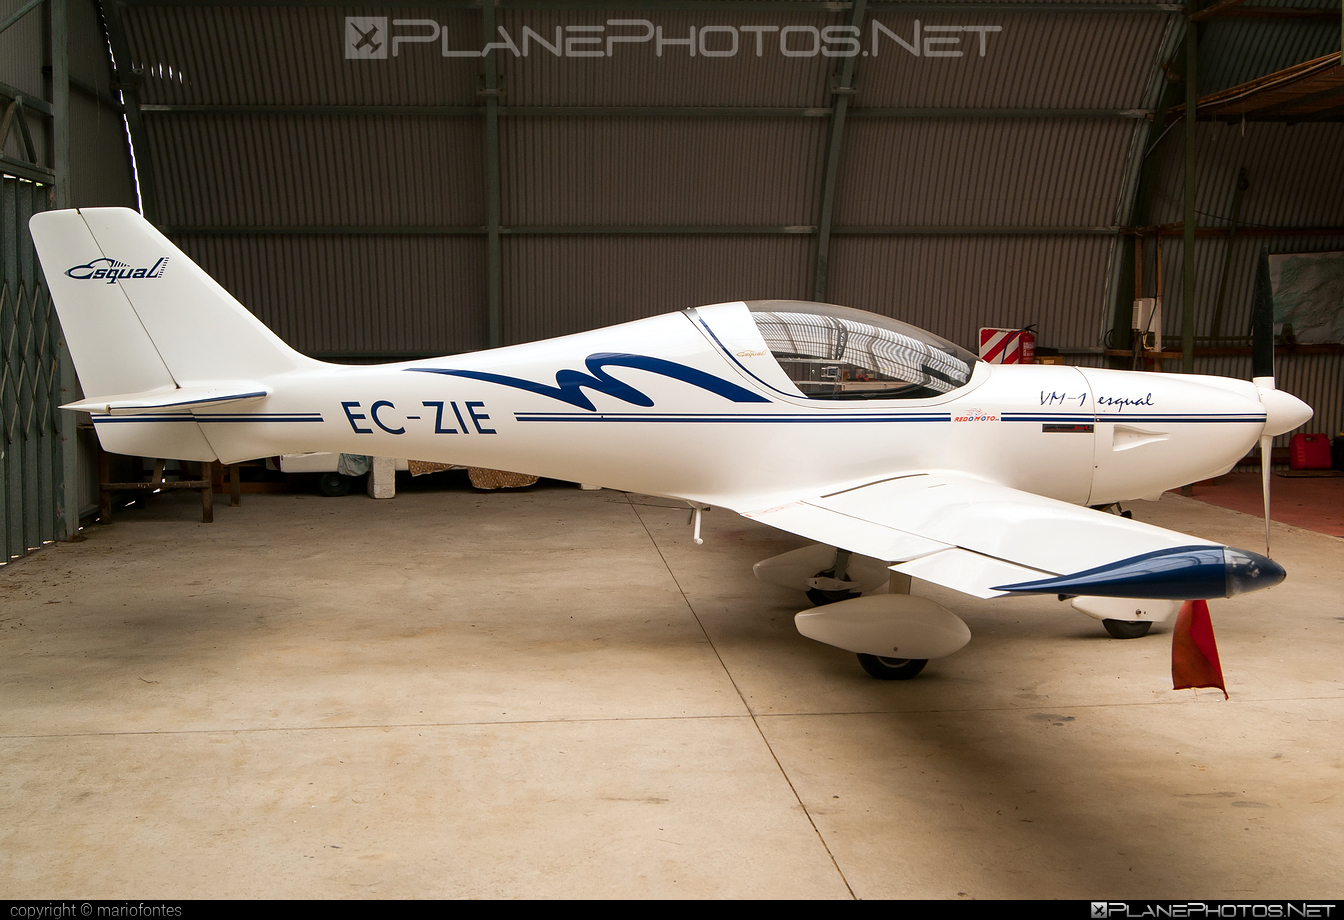 Vol Mediterrani VM-1 Esqual - EC-ZIE operated by Private operator #vm1esqual #volmediterrani